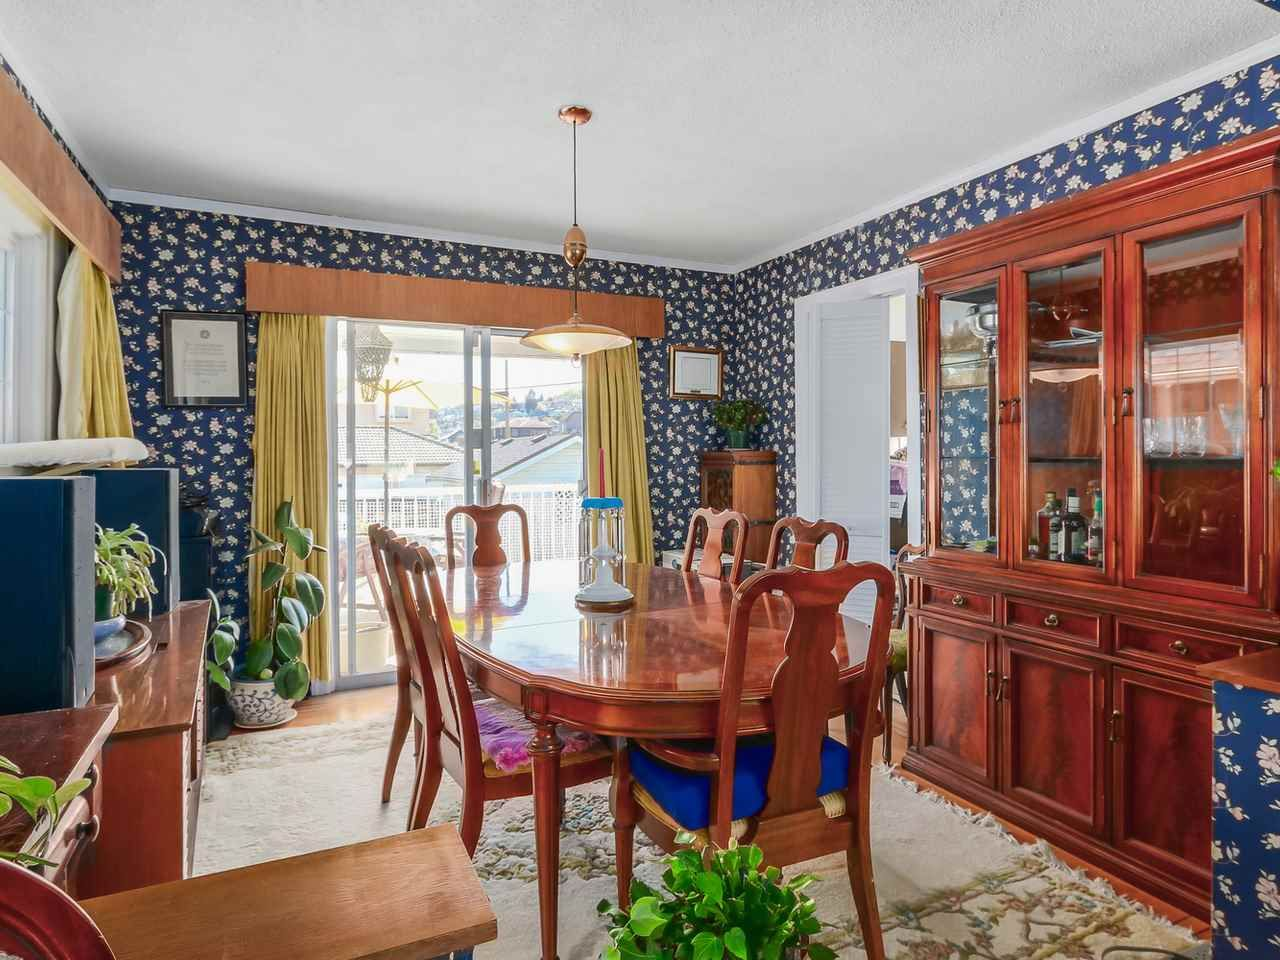 Photo 9: Photos: 2796 W 21ST Avenue in Vancouver: Arbutus House for sale (Vancouver West)  : MLS®# R2078868